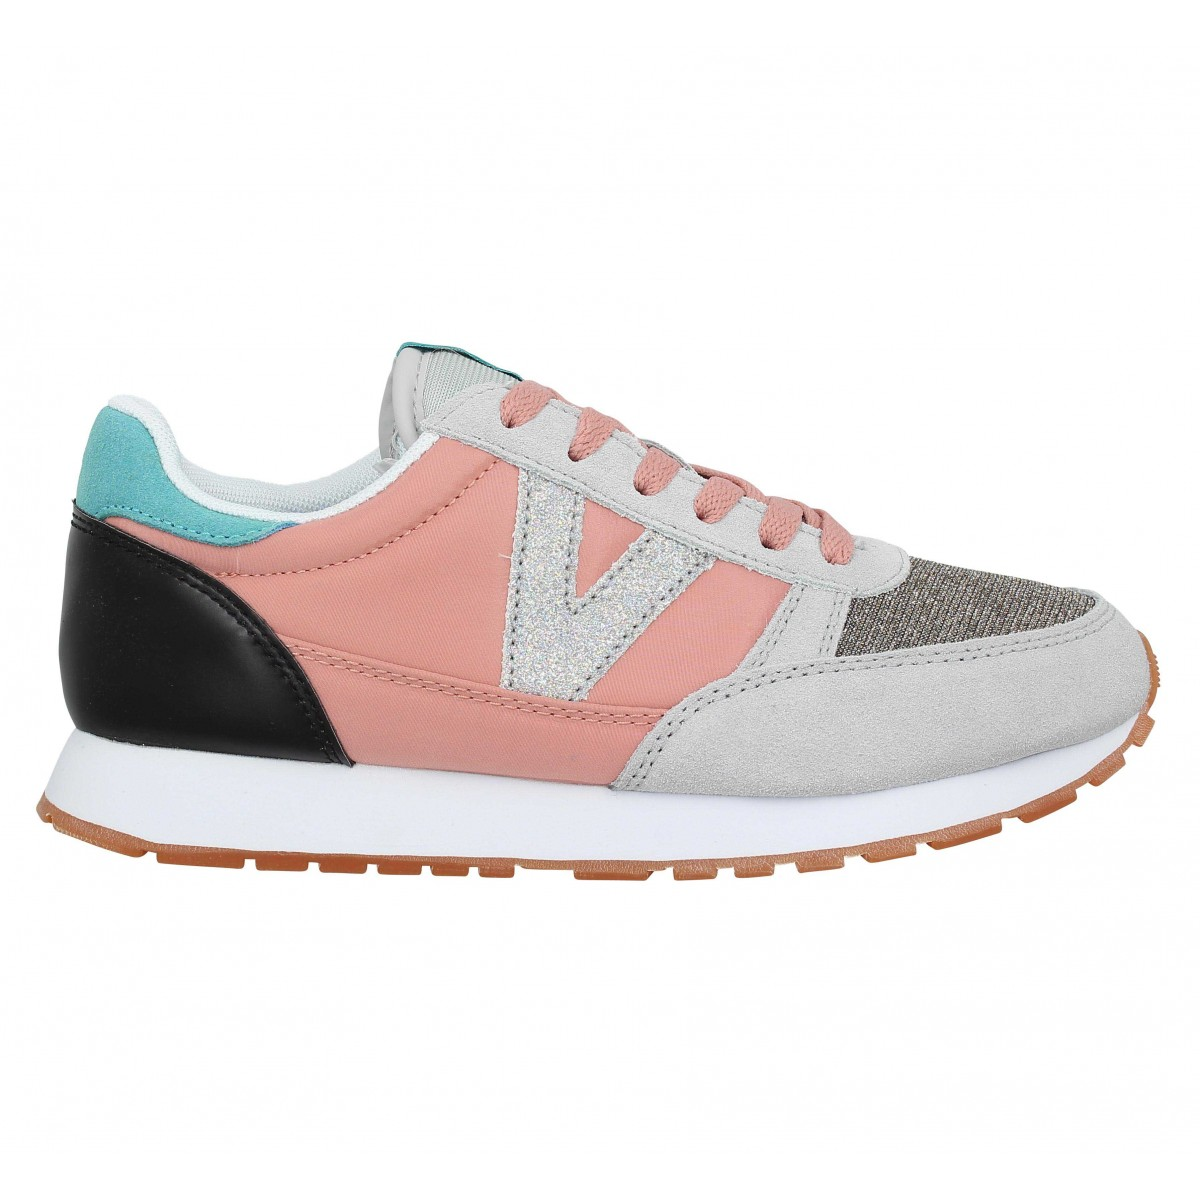 Chaussures Victoria 41104 toile femme rose femme | Fanny